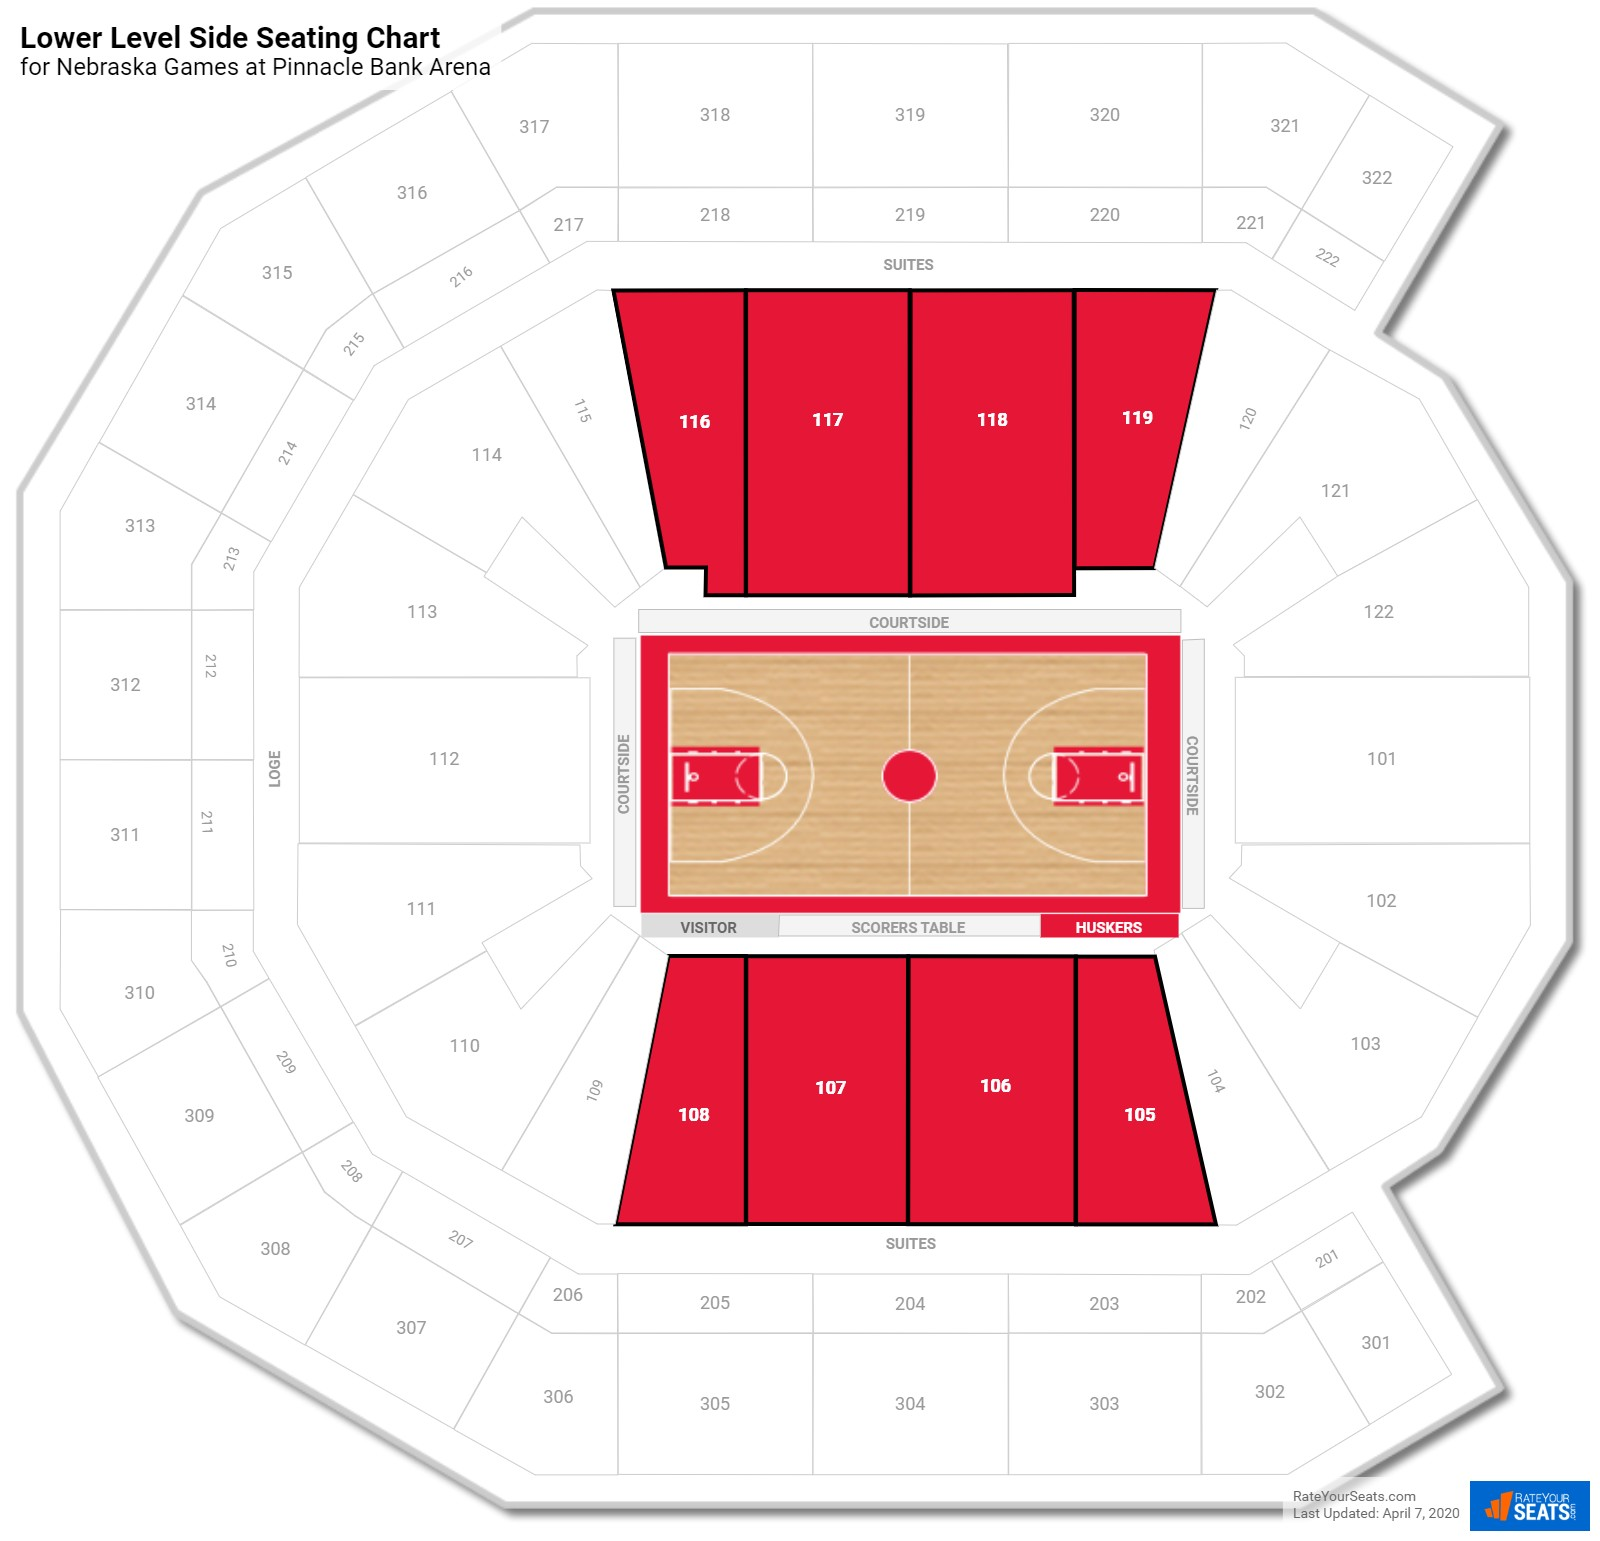 Pinnacle Bank Arena Lower Level Side Seating Chart